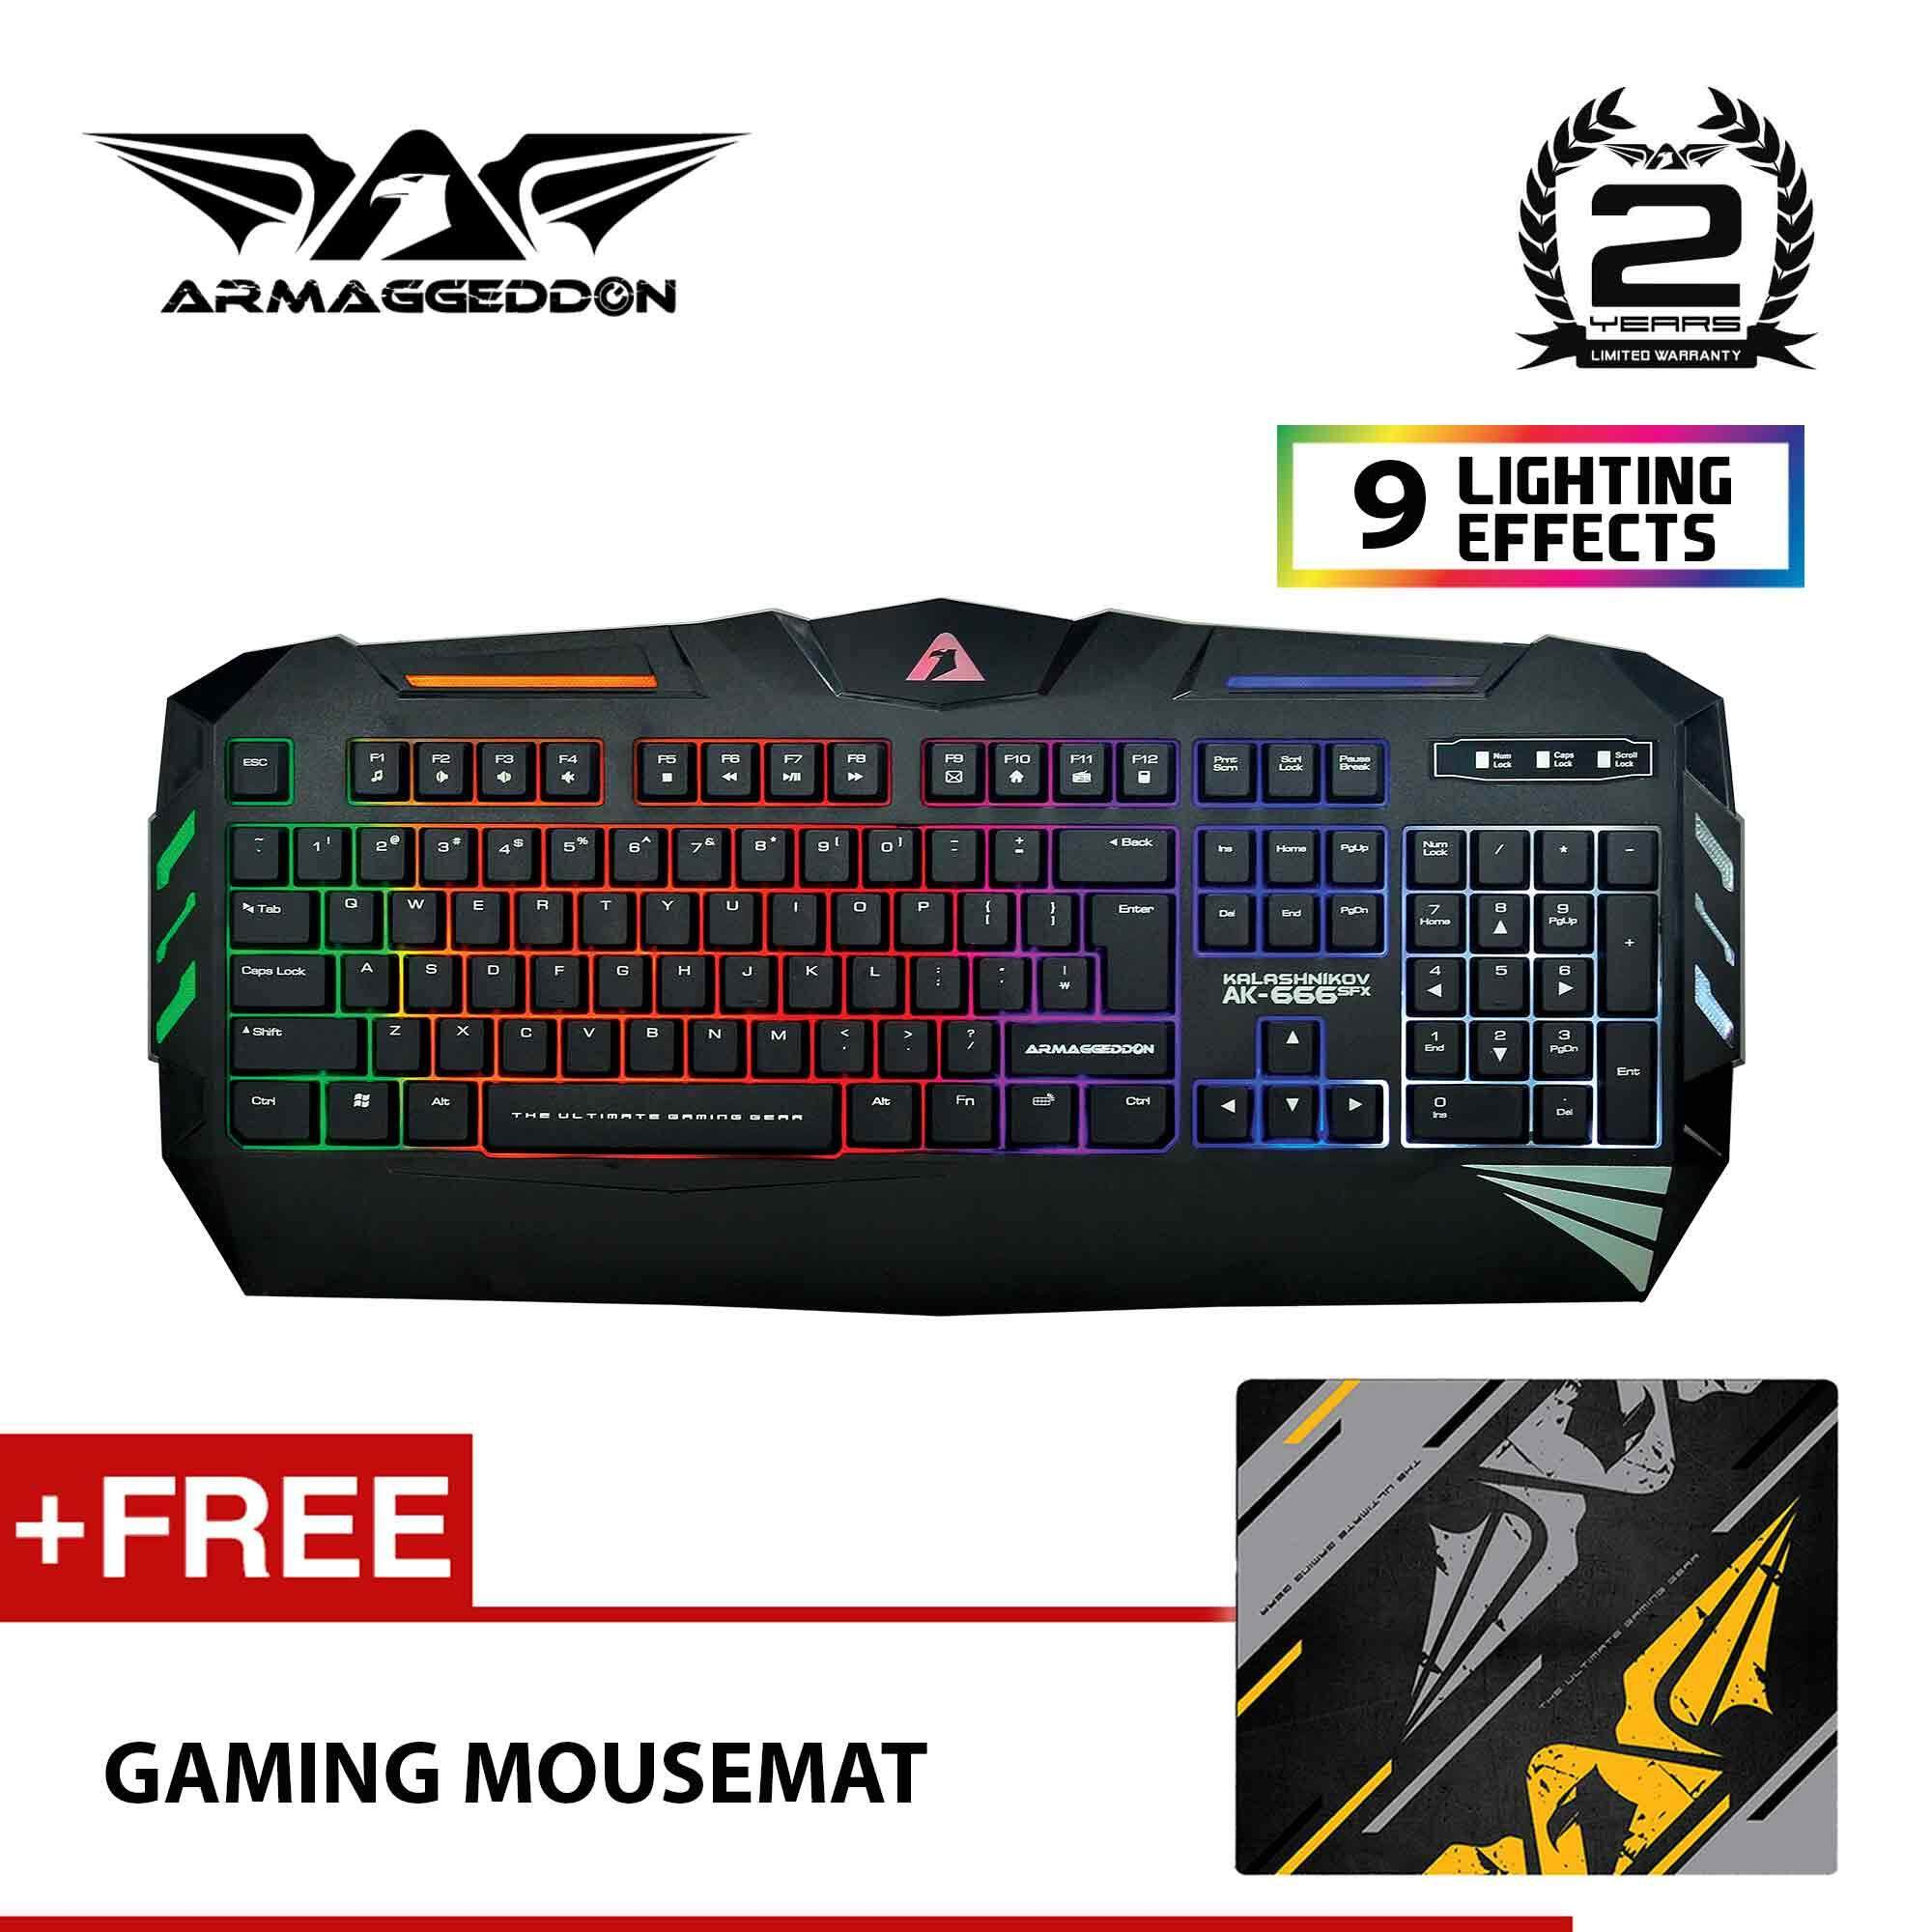 AK-666sfx Spill Proof Gaming Keyboard with 9 Lighting Effect Free Mousemat by Armaggeddon Malaysia